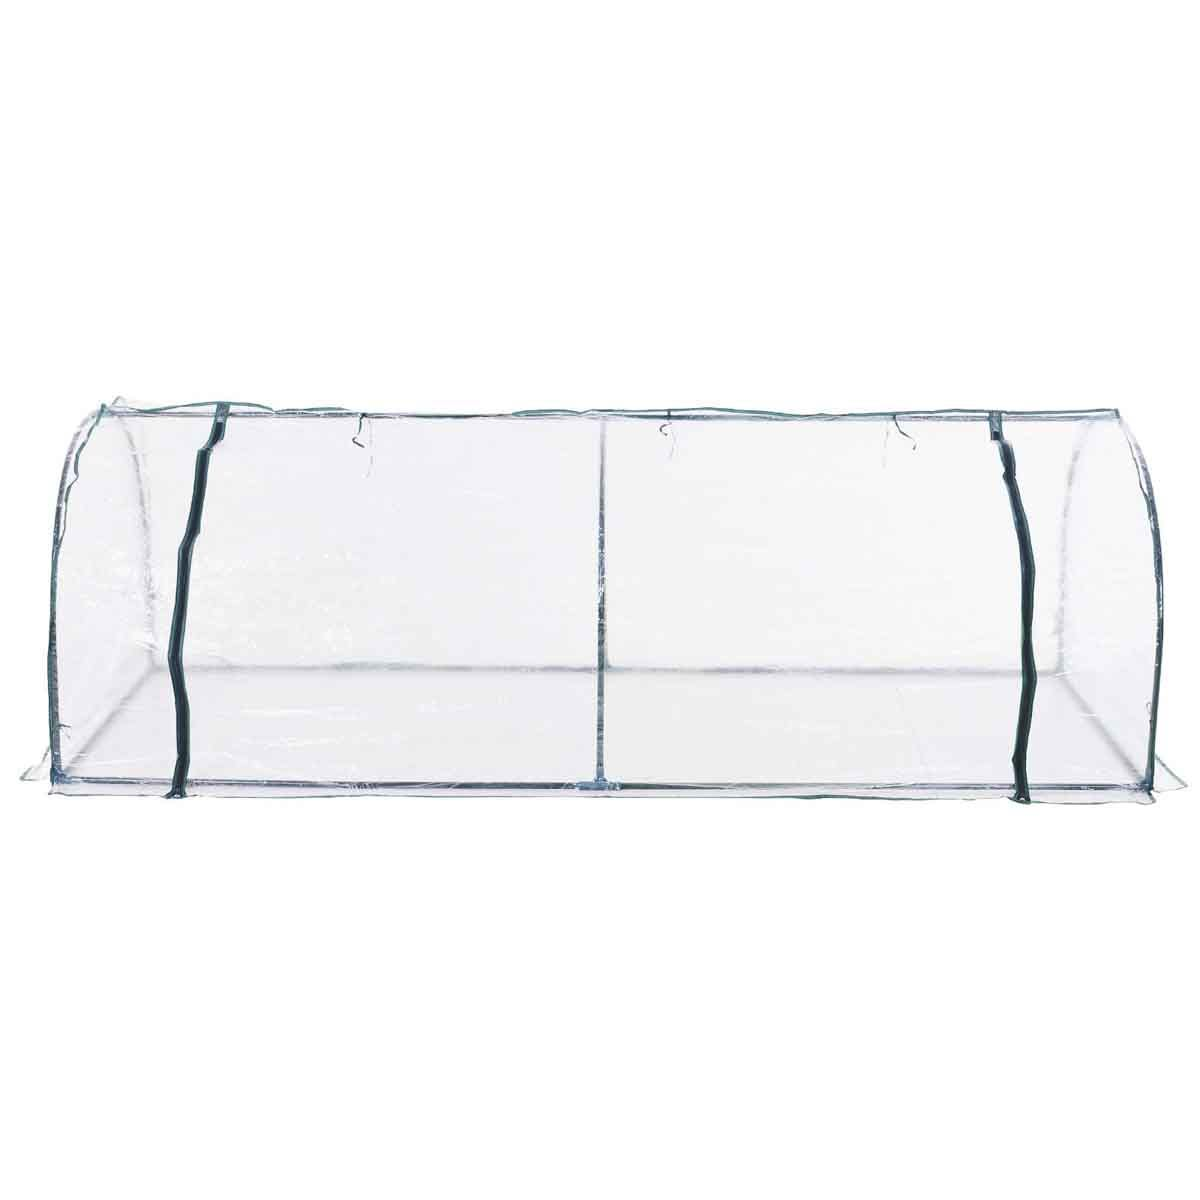 Outsunny PVC 1 x 2.5m Tunnel Greenhouse with Steel Frame